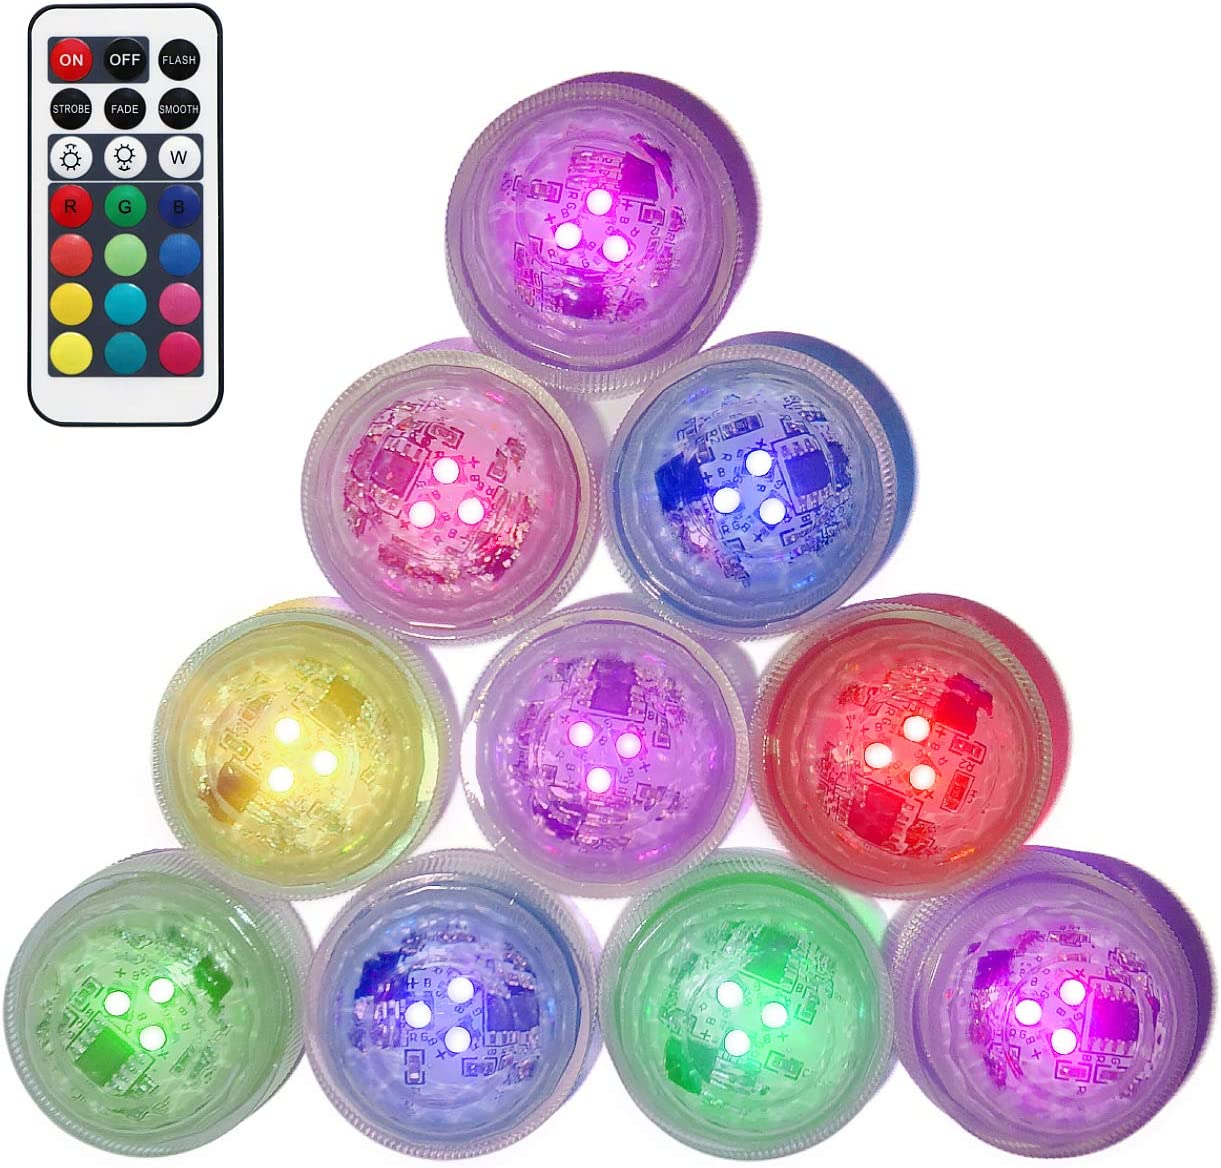 Sunyel Submersible LED Tea Lights, Waterproof and Battery Powered RGB Color Changing LED Light with Remote 10 Pack